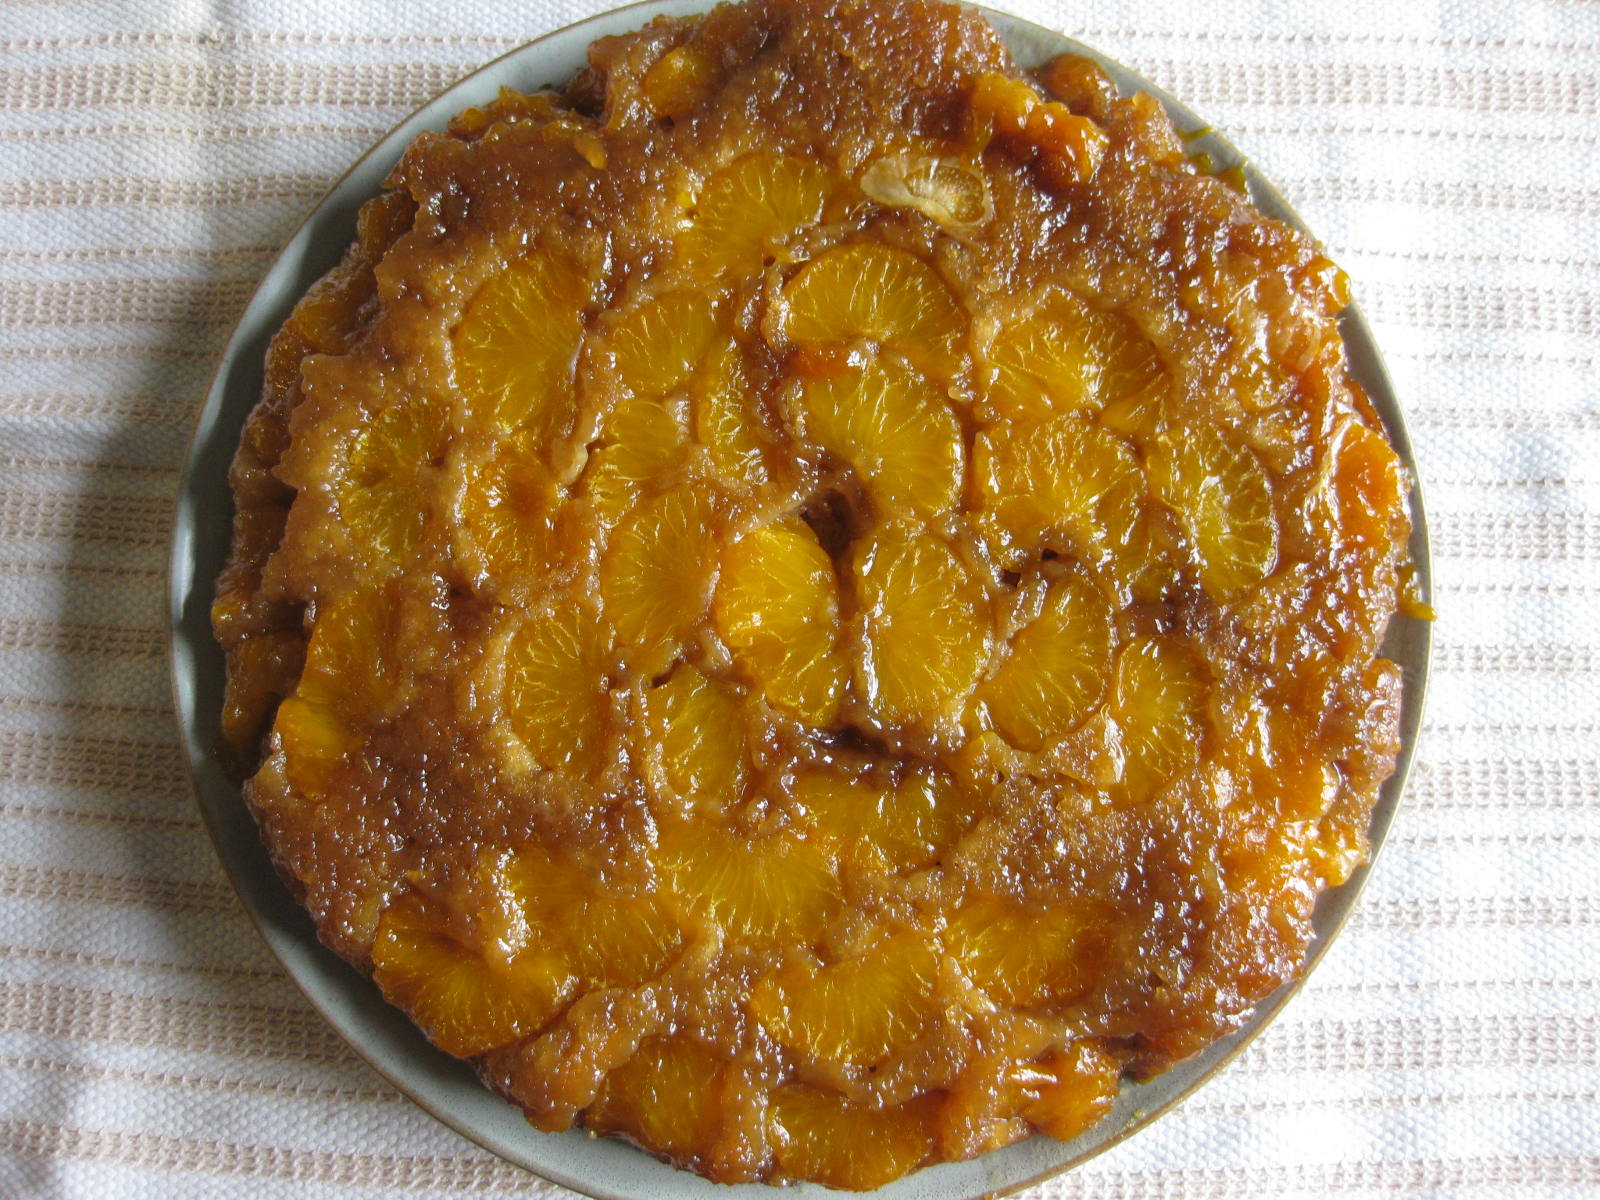 Orange Cardamom Upside Down Cake